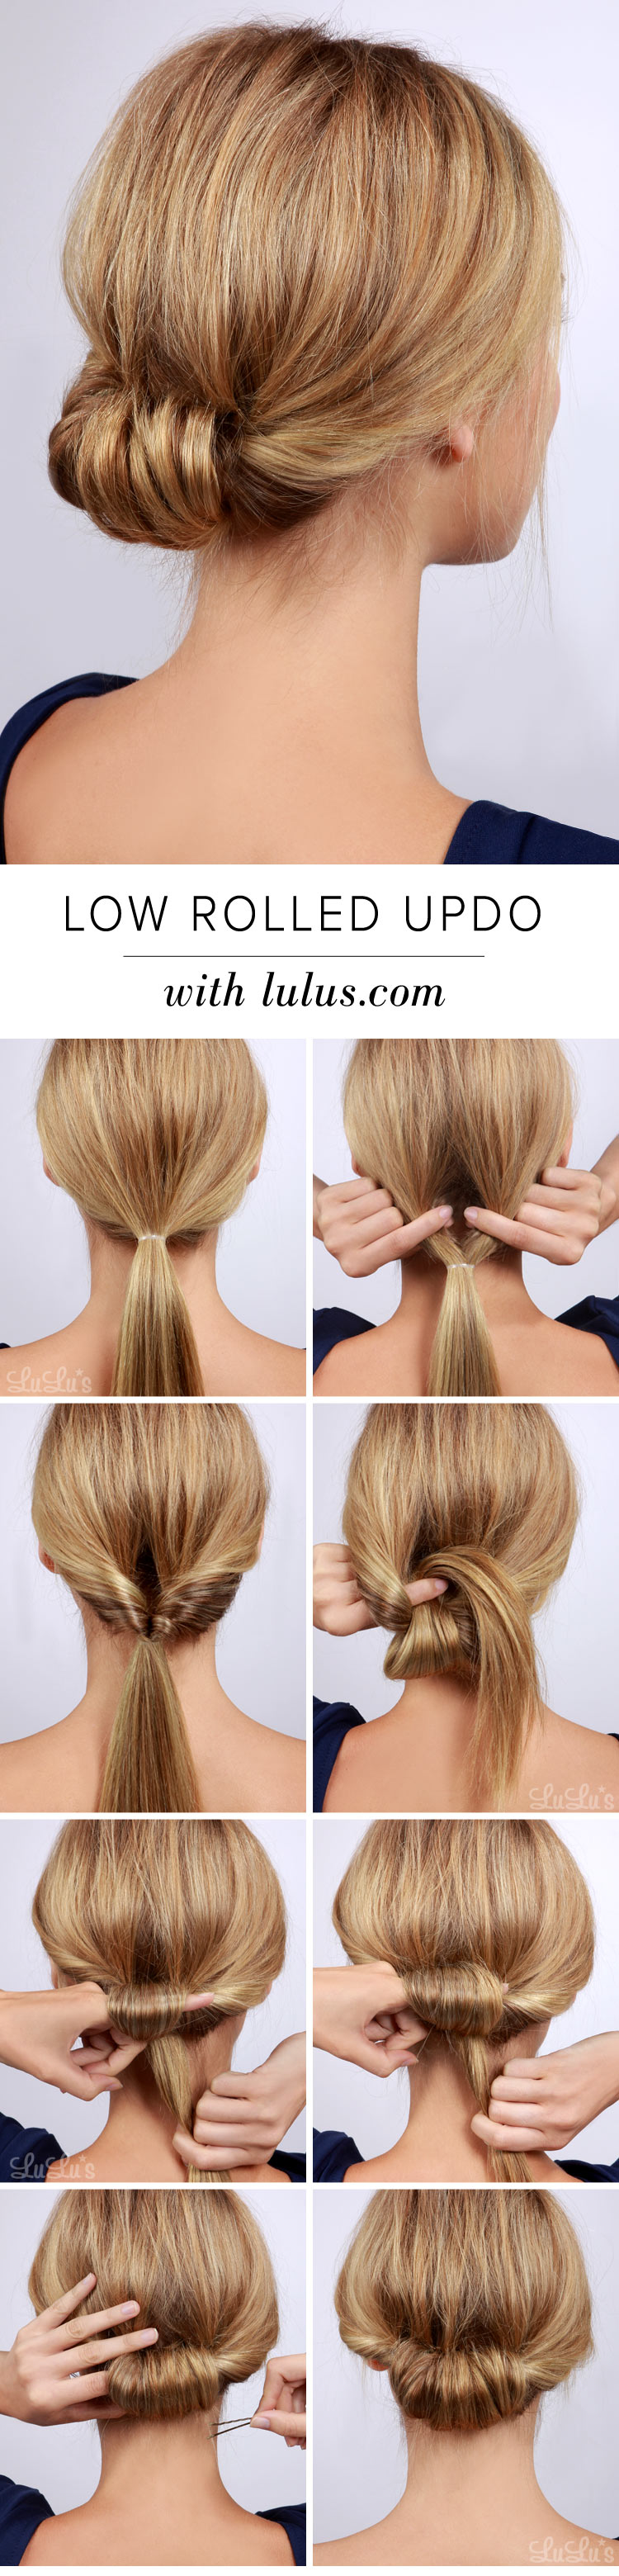 Diy low rolled updo